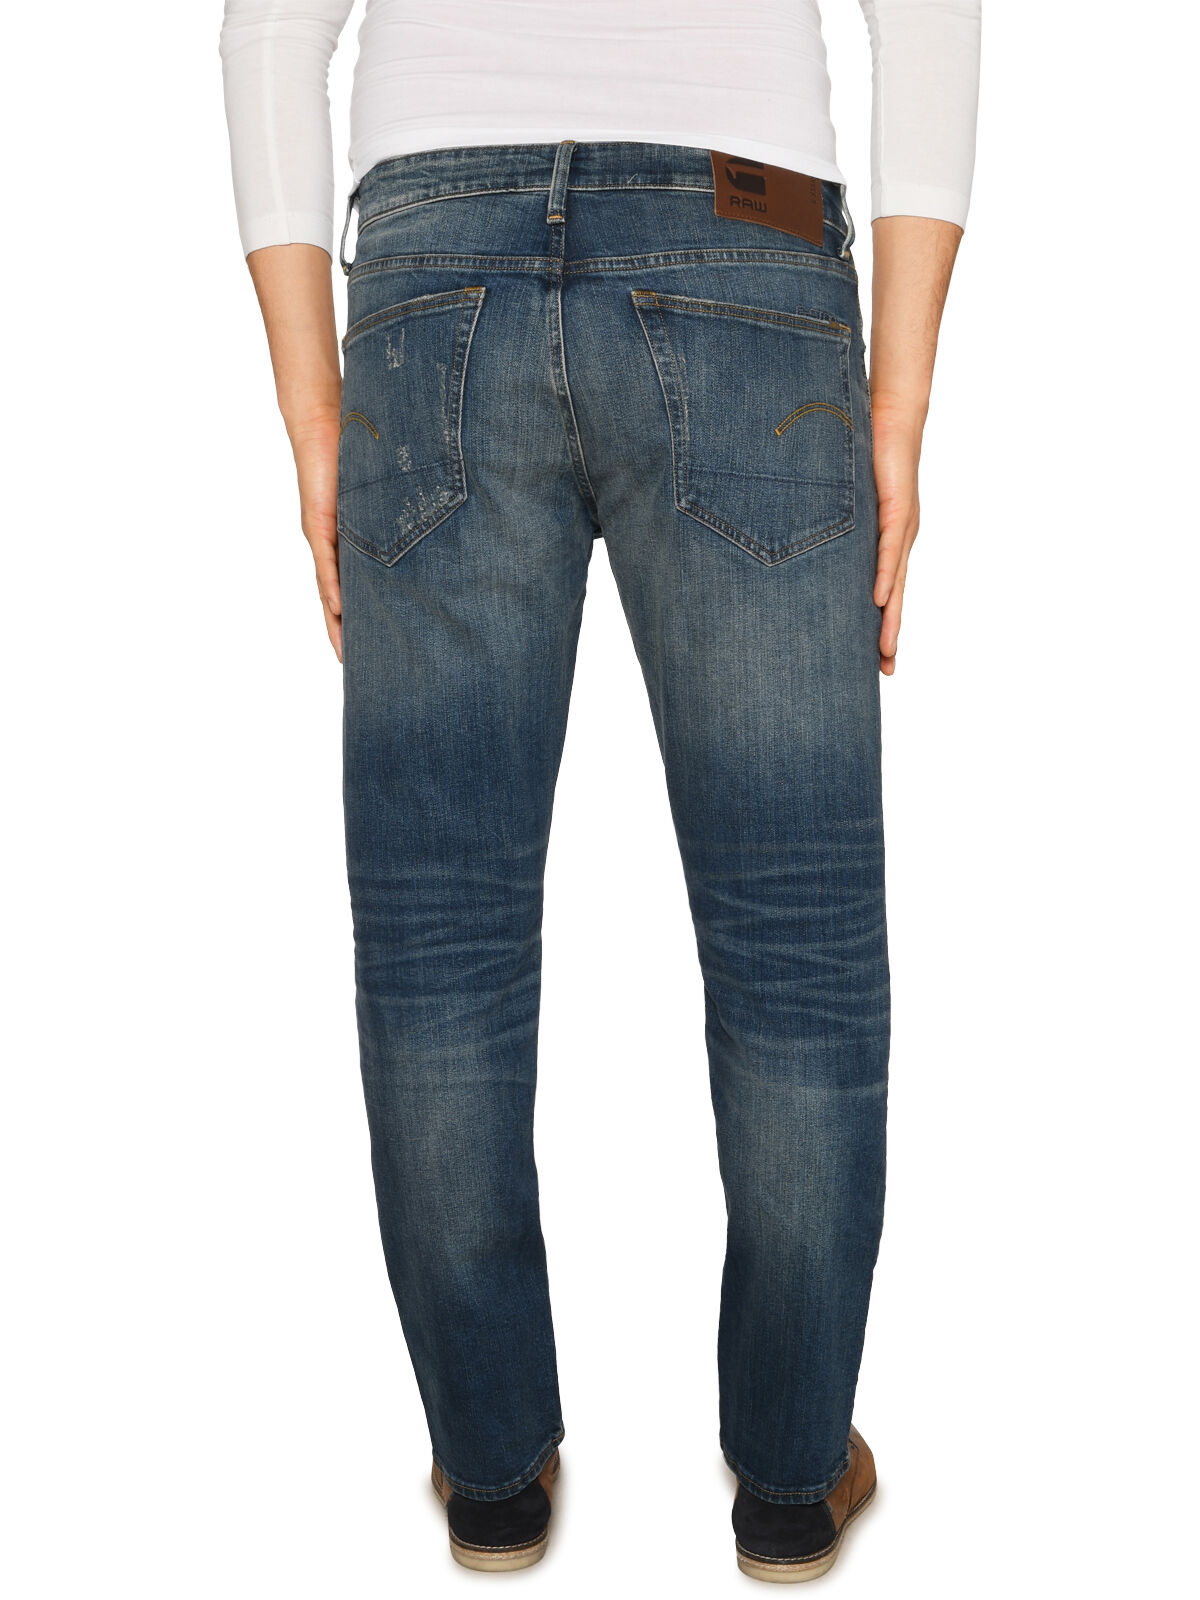 3301 Jeans